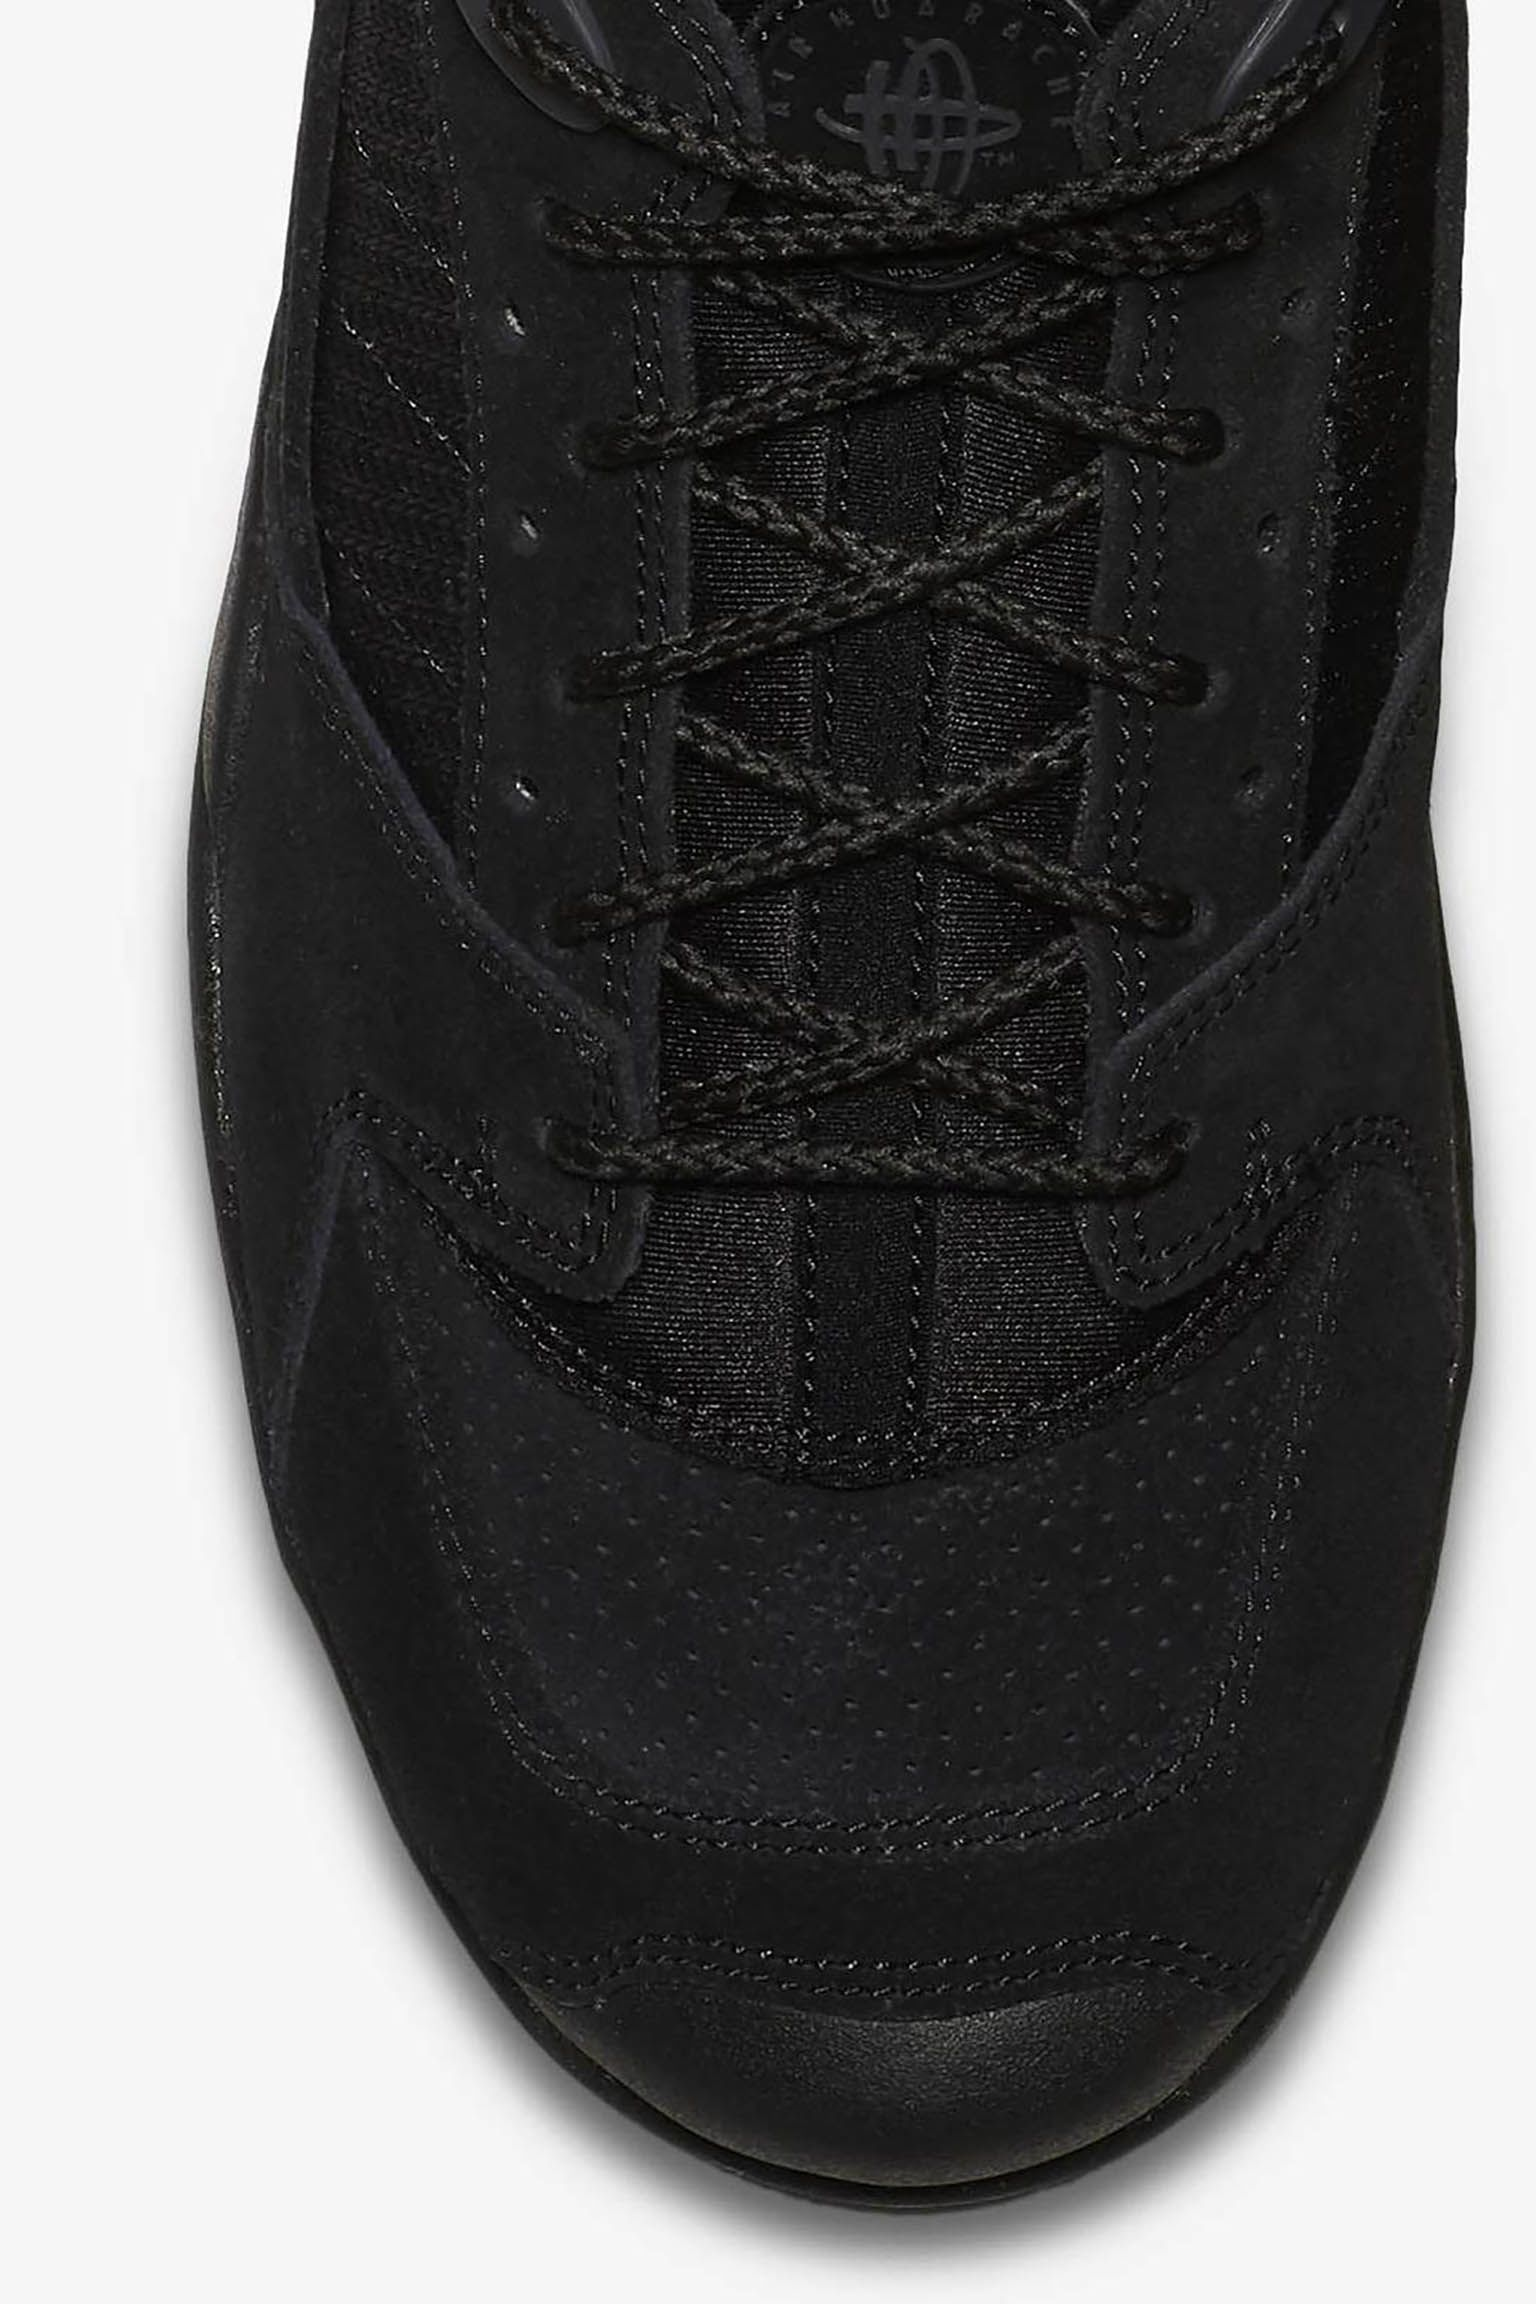 Nike Air Revaderchi 'Black & Anthracite' Release Date